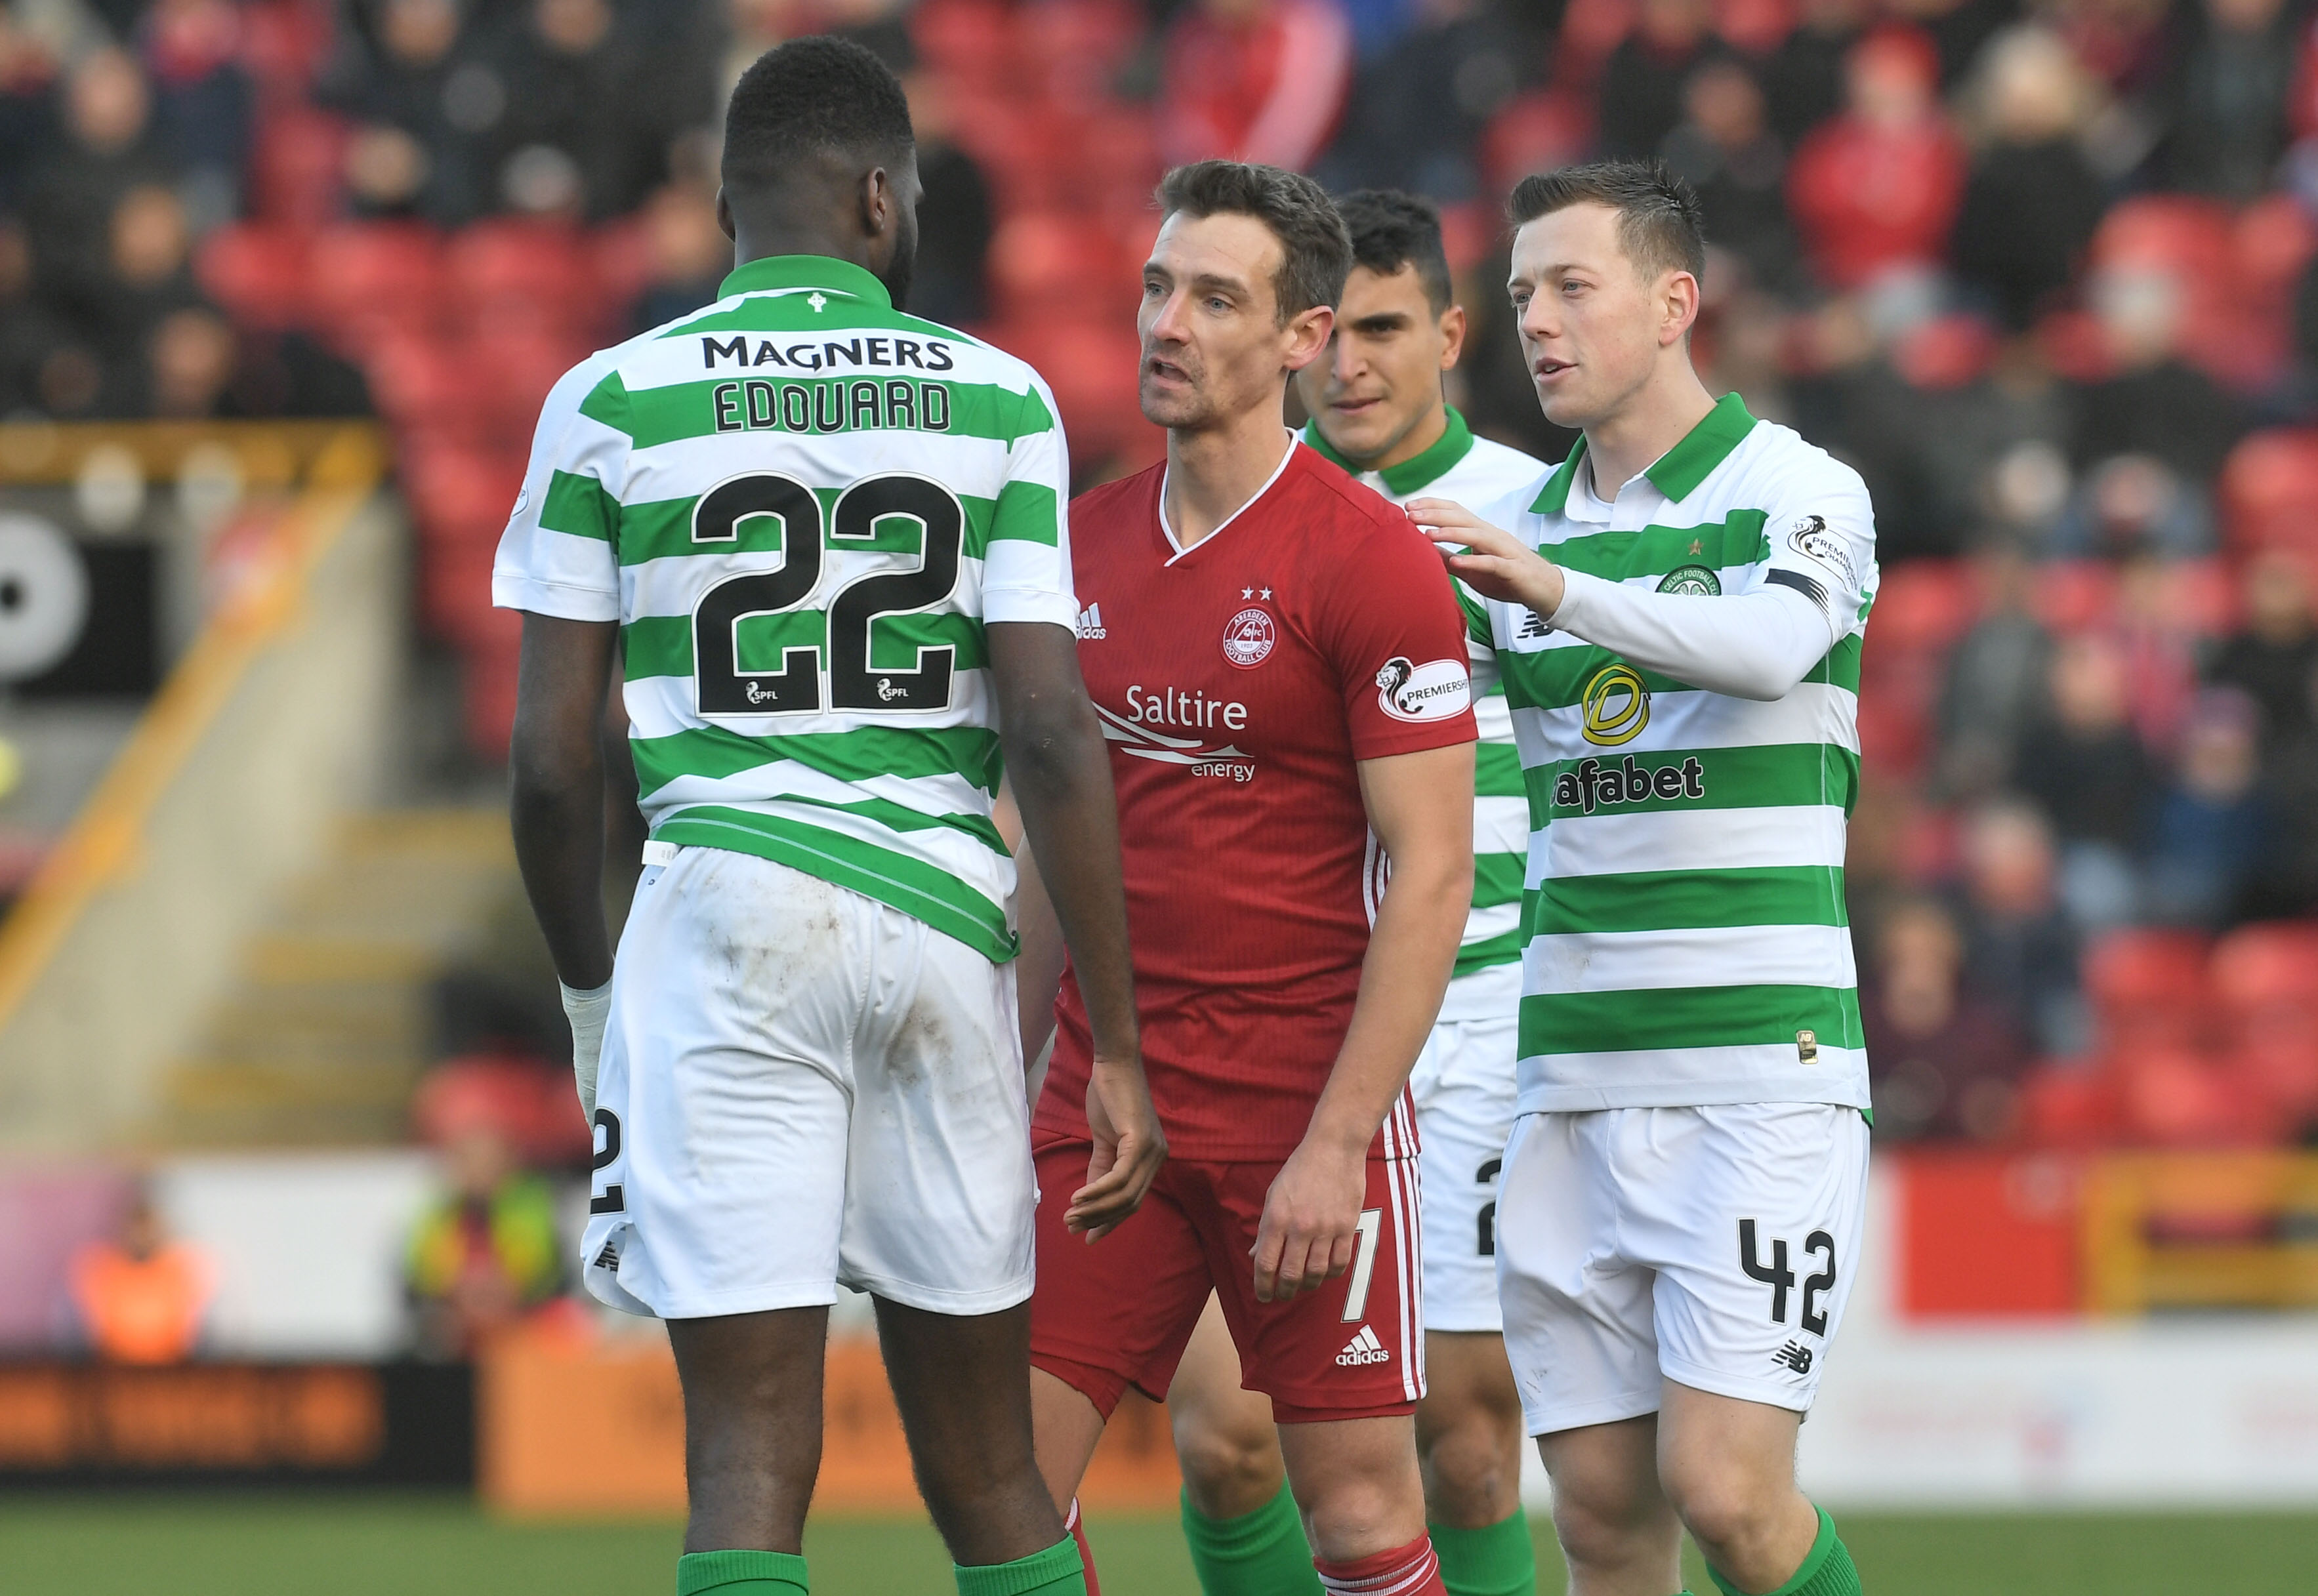 Celtic's Odsonne Edouard, left, exchanges words with Craig Bryson during the Ladbrokes Premiership match between Aberdeen and Celtic.